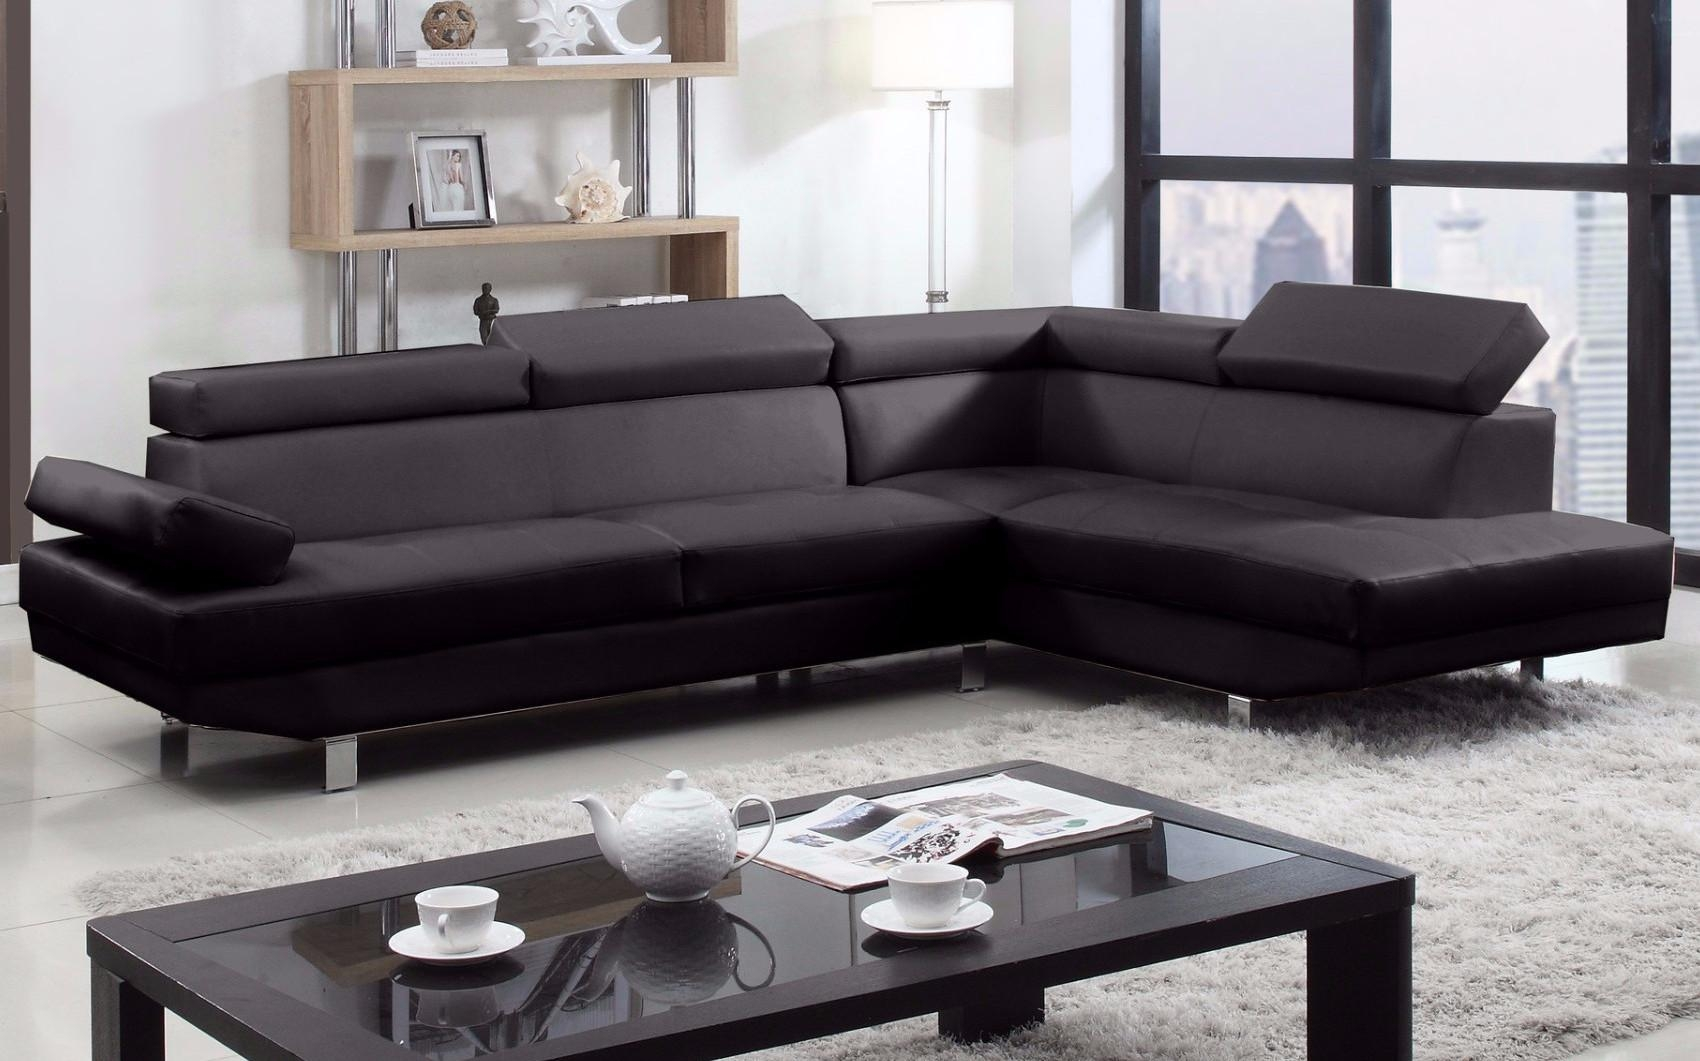 2 Piece Modern Bonded Leather Right Facing Chaise Sectional Sofa Within 2 Piece Sofas (Image 3 of 20)